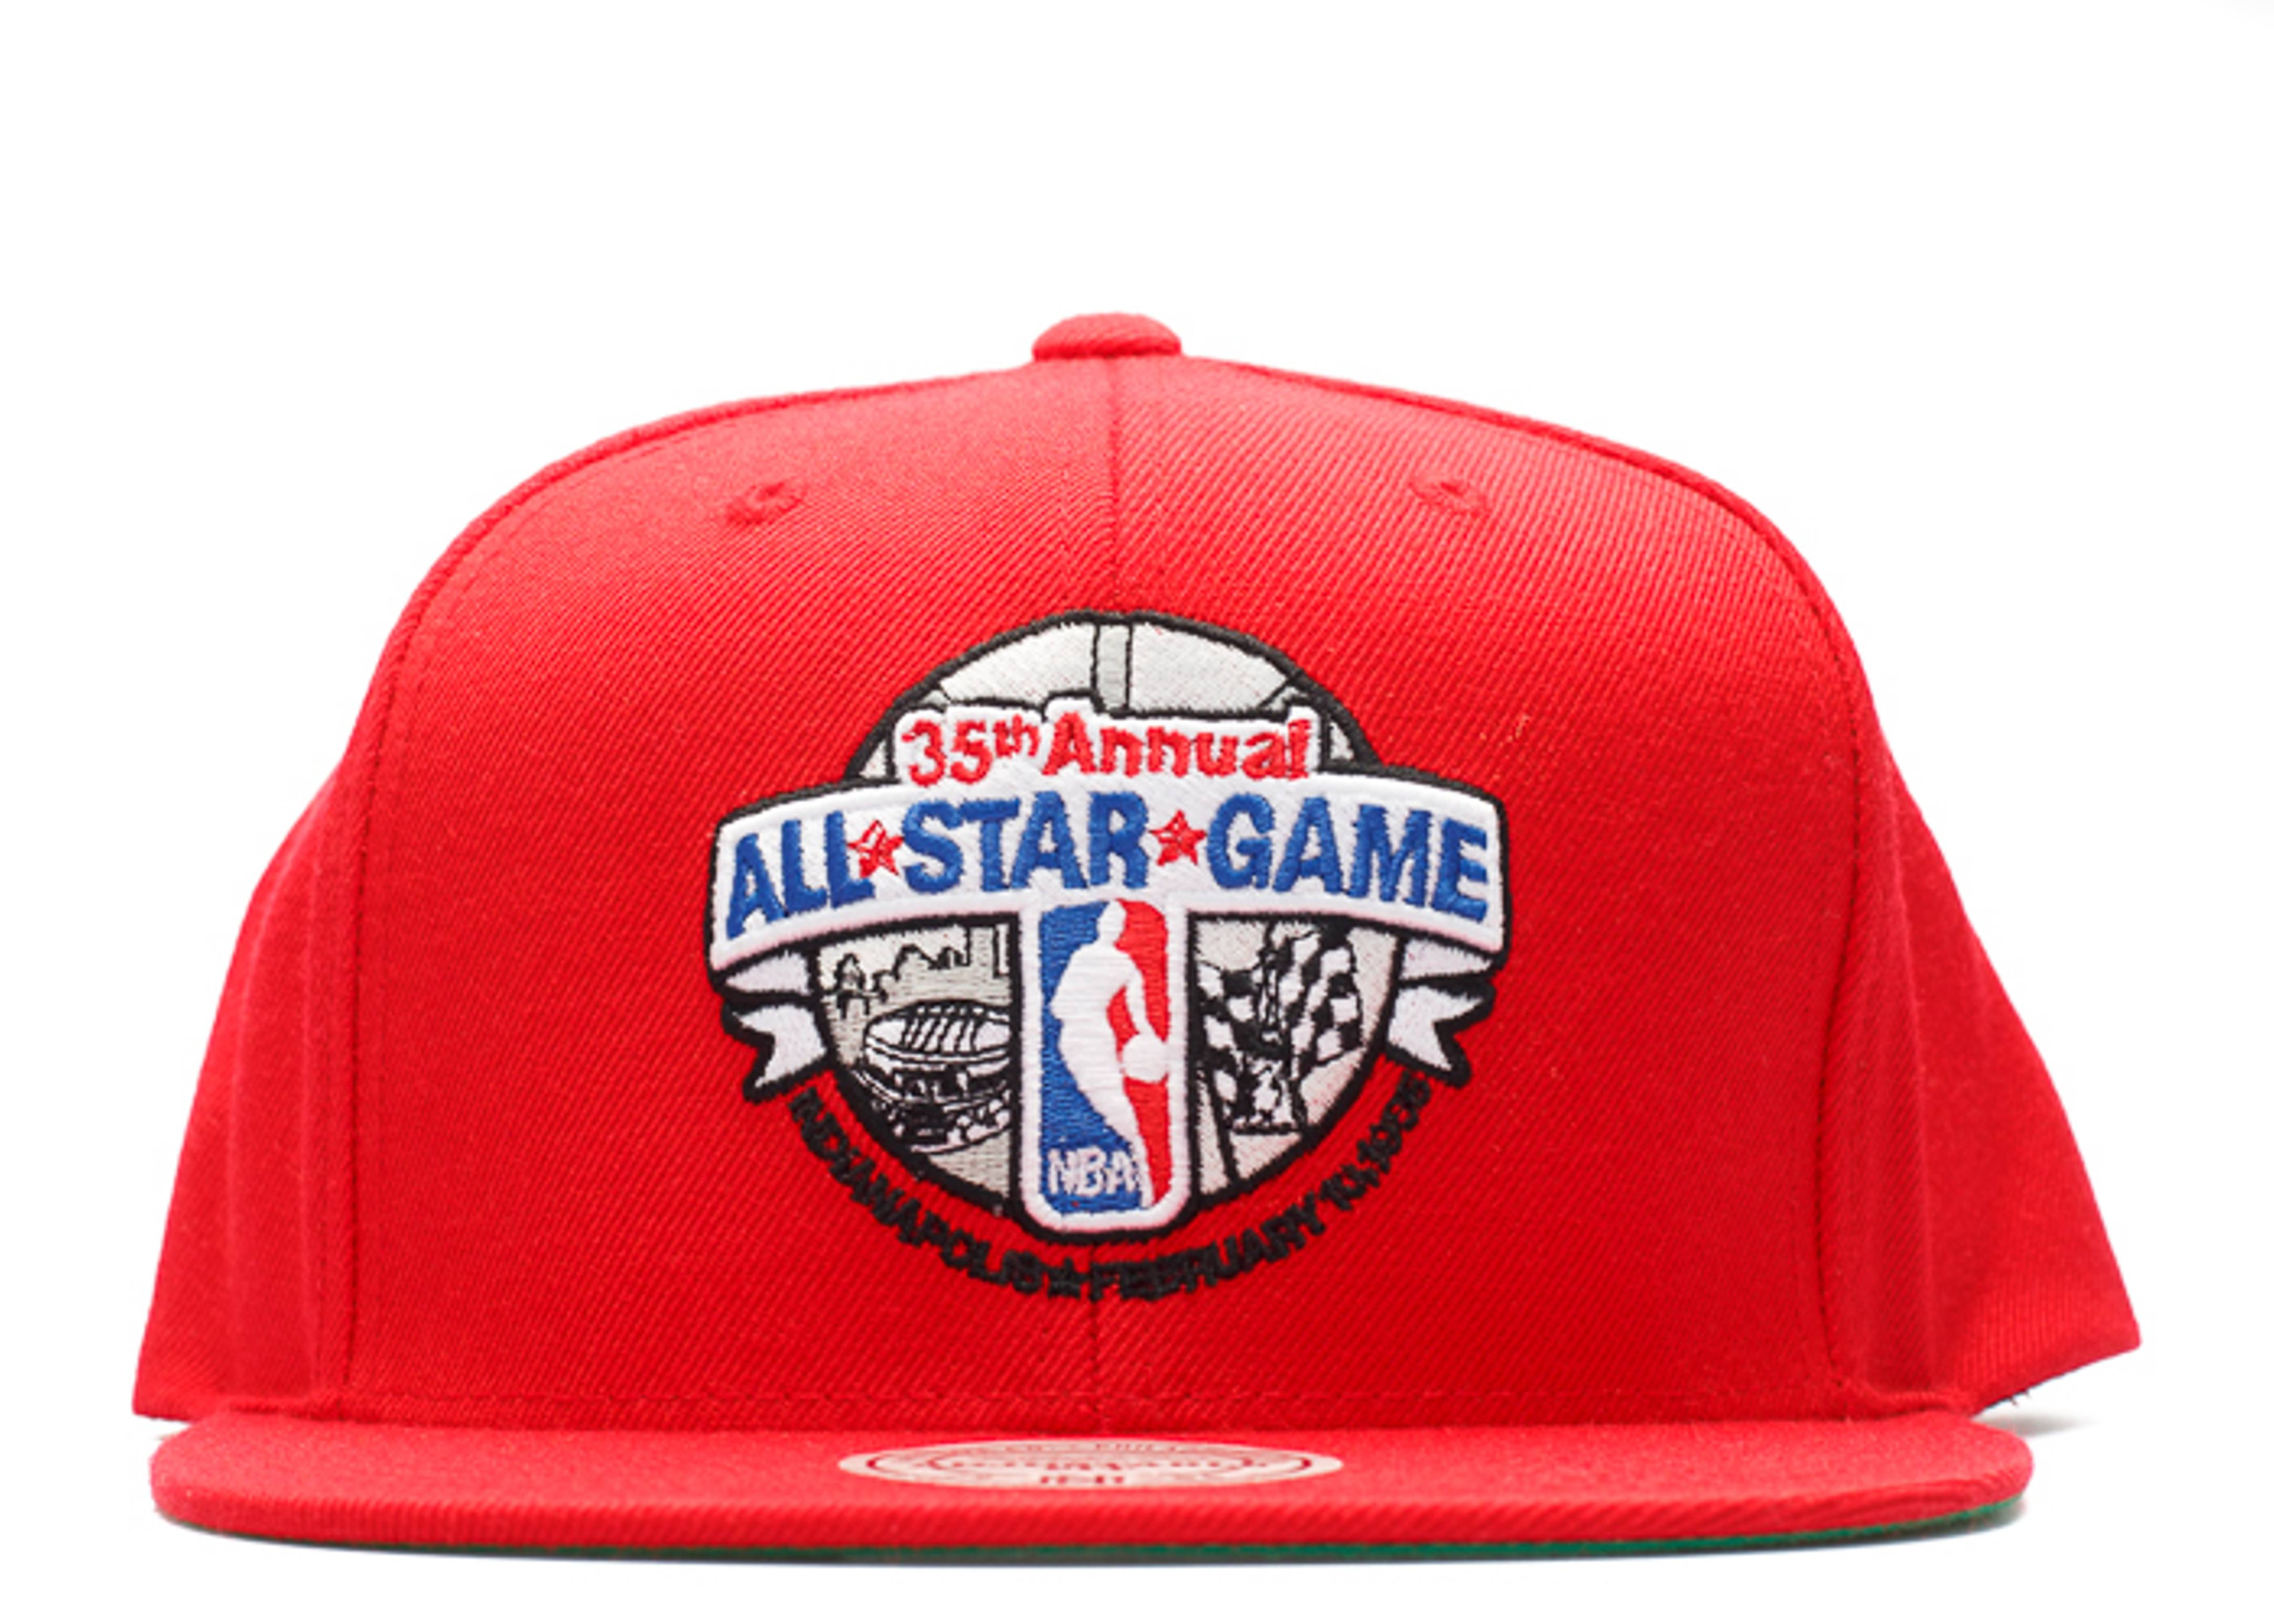 1985 nba all-star game snap-back